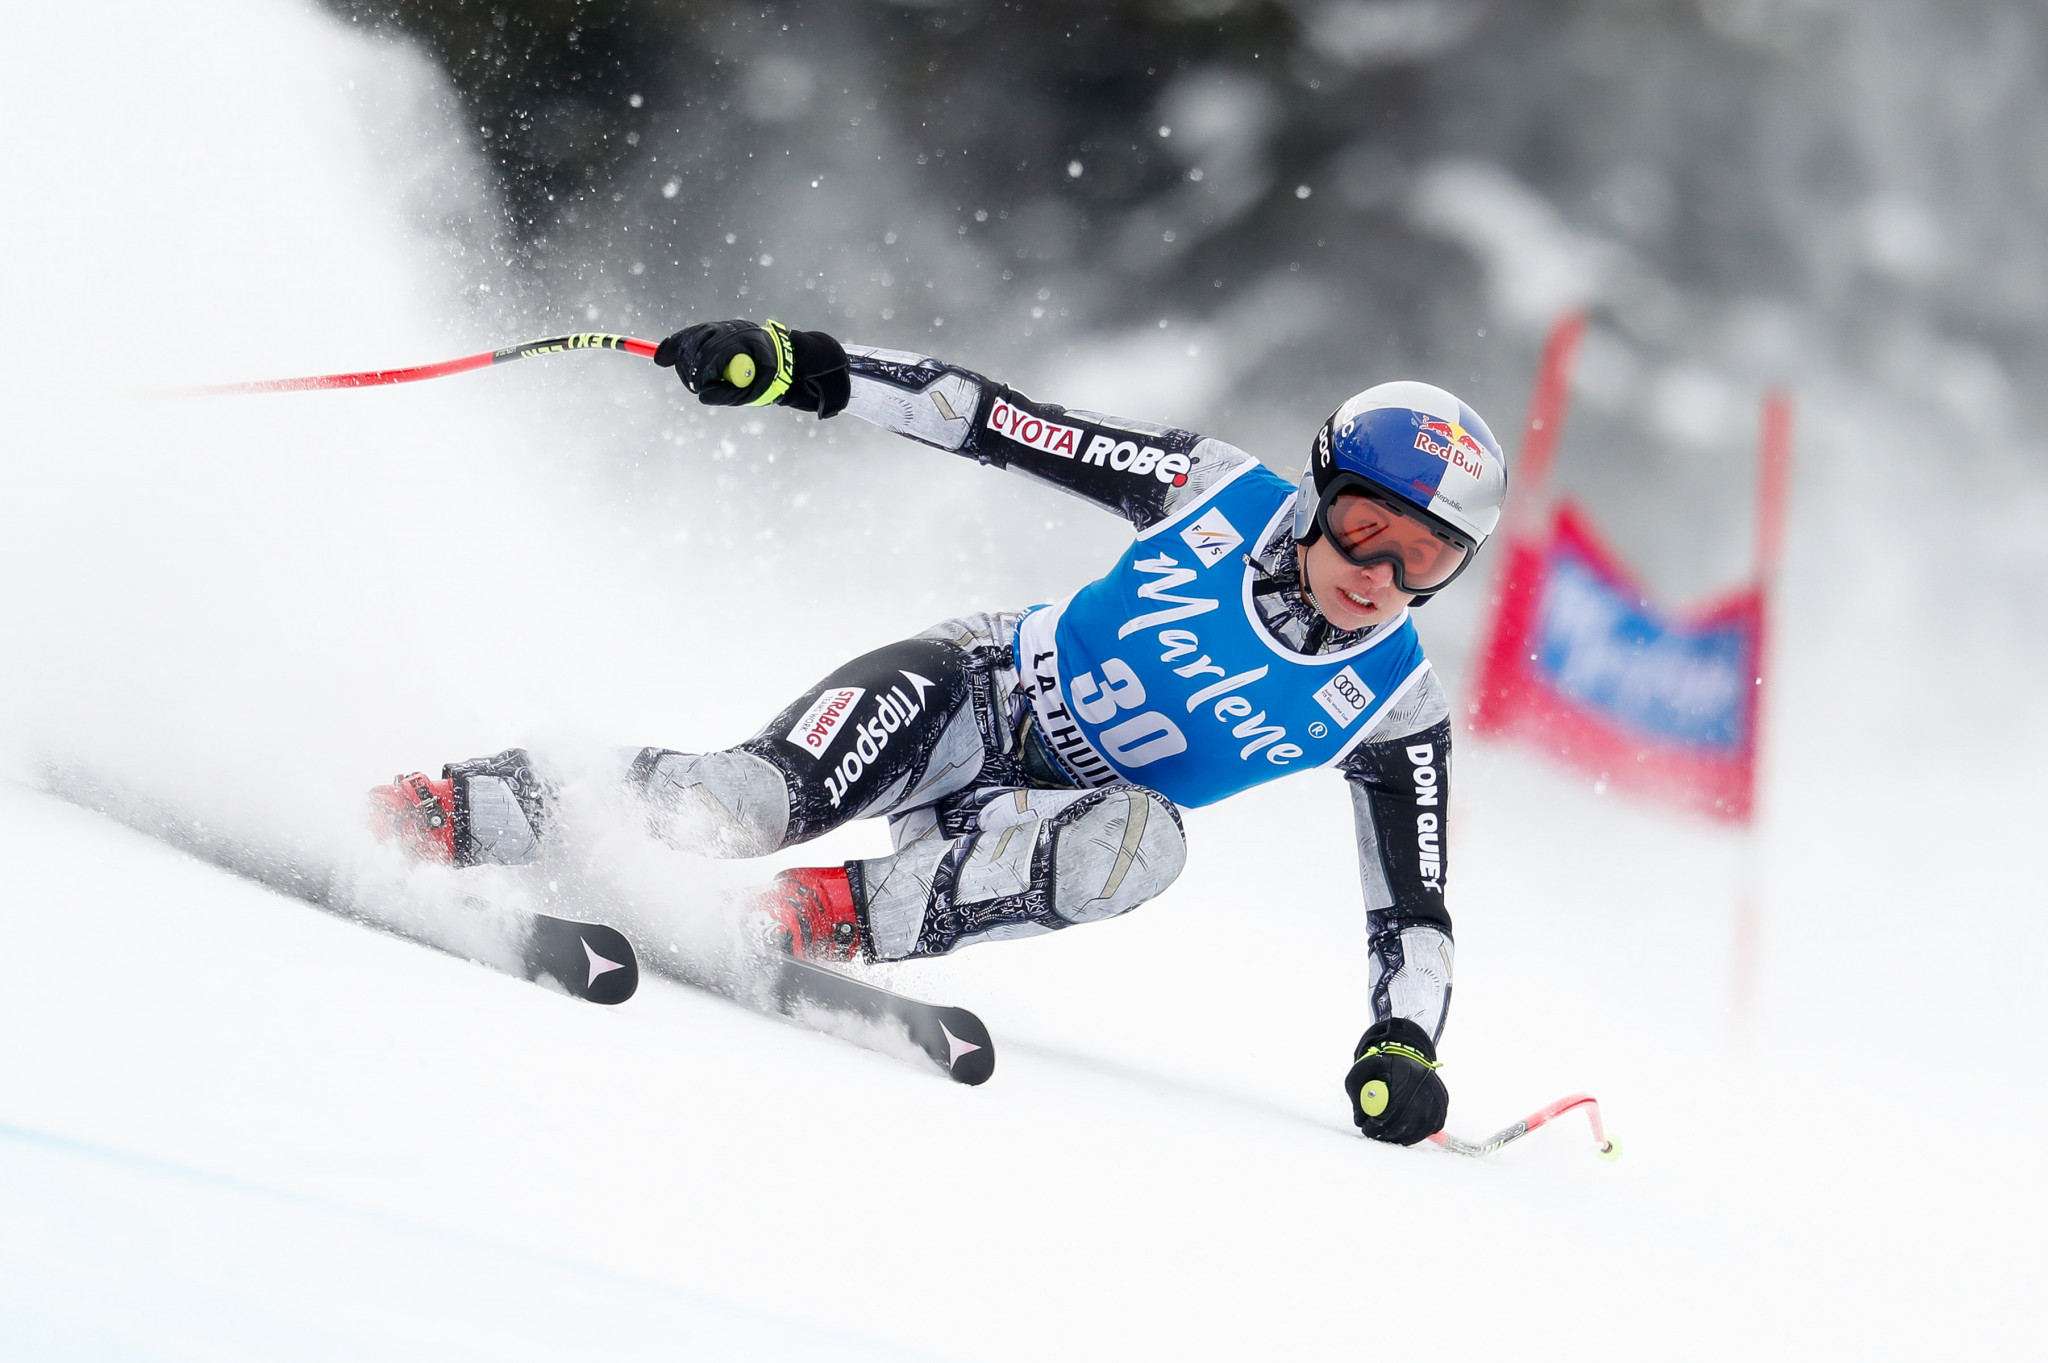 Ledecka named Czech winter sports athlete of the year for fourth time